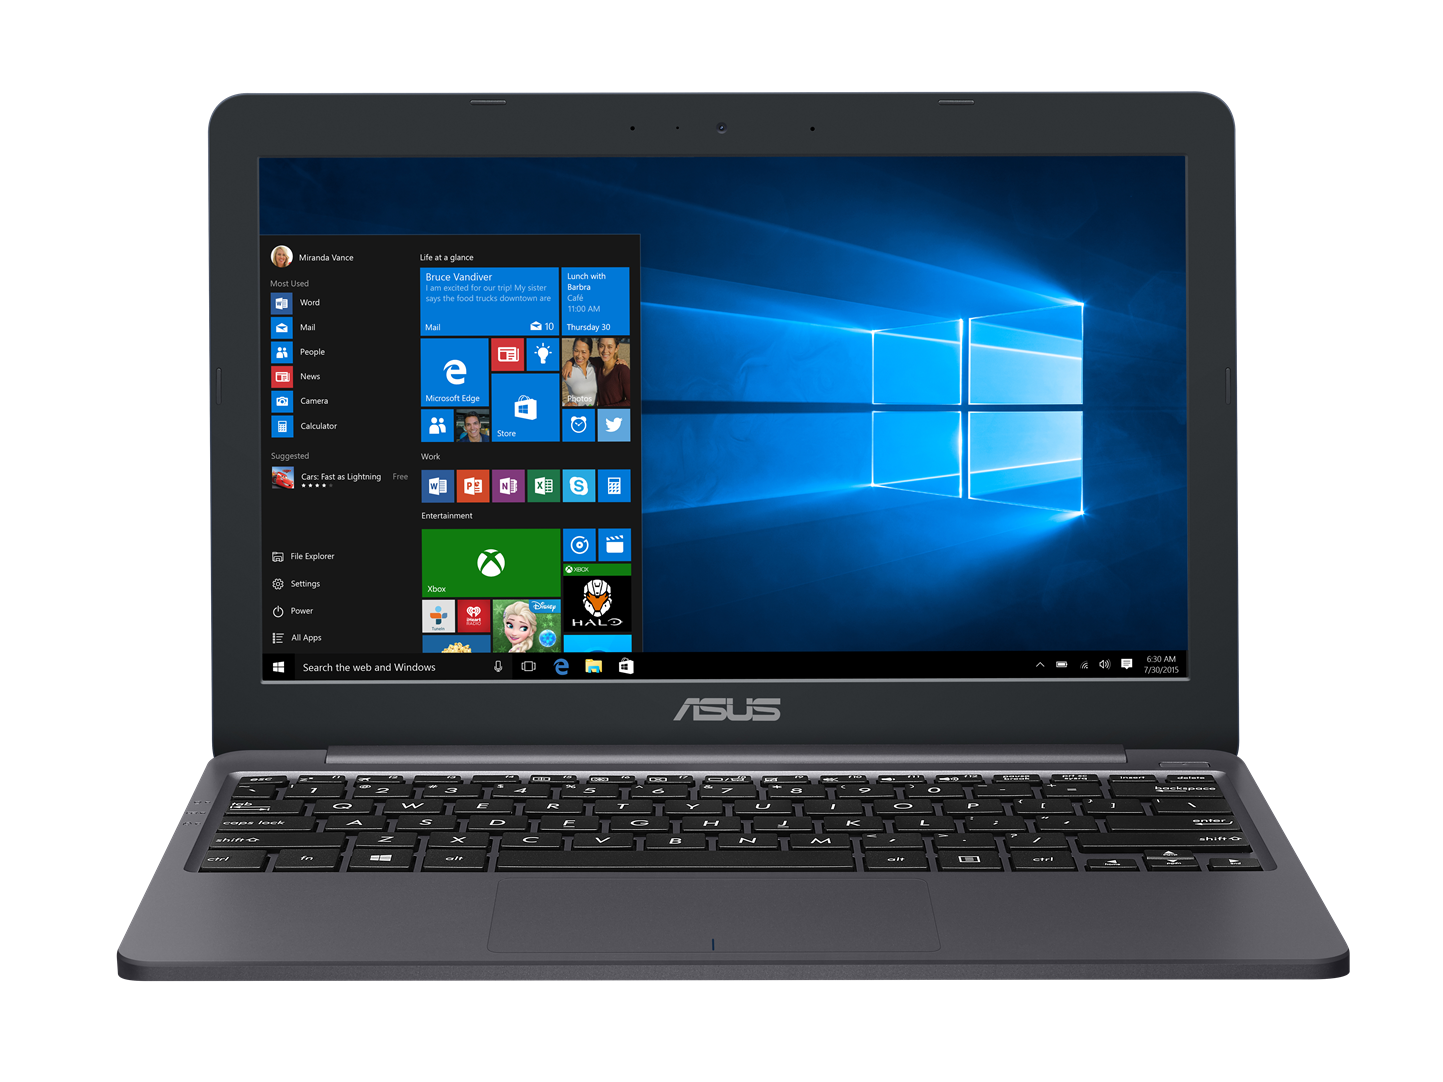 "ASUS E203NA-FD107TS Celeron N3350/4GB/32GB EMMC/Intel HD Graphics 500/11,6"" 1366x768 HD/Lesklý/BT/W10 Home/Grey"